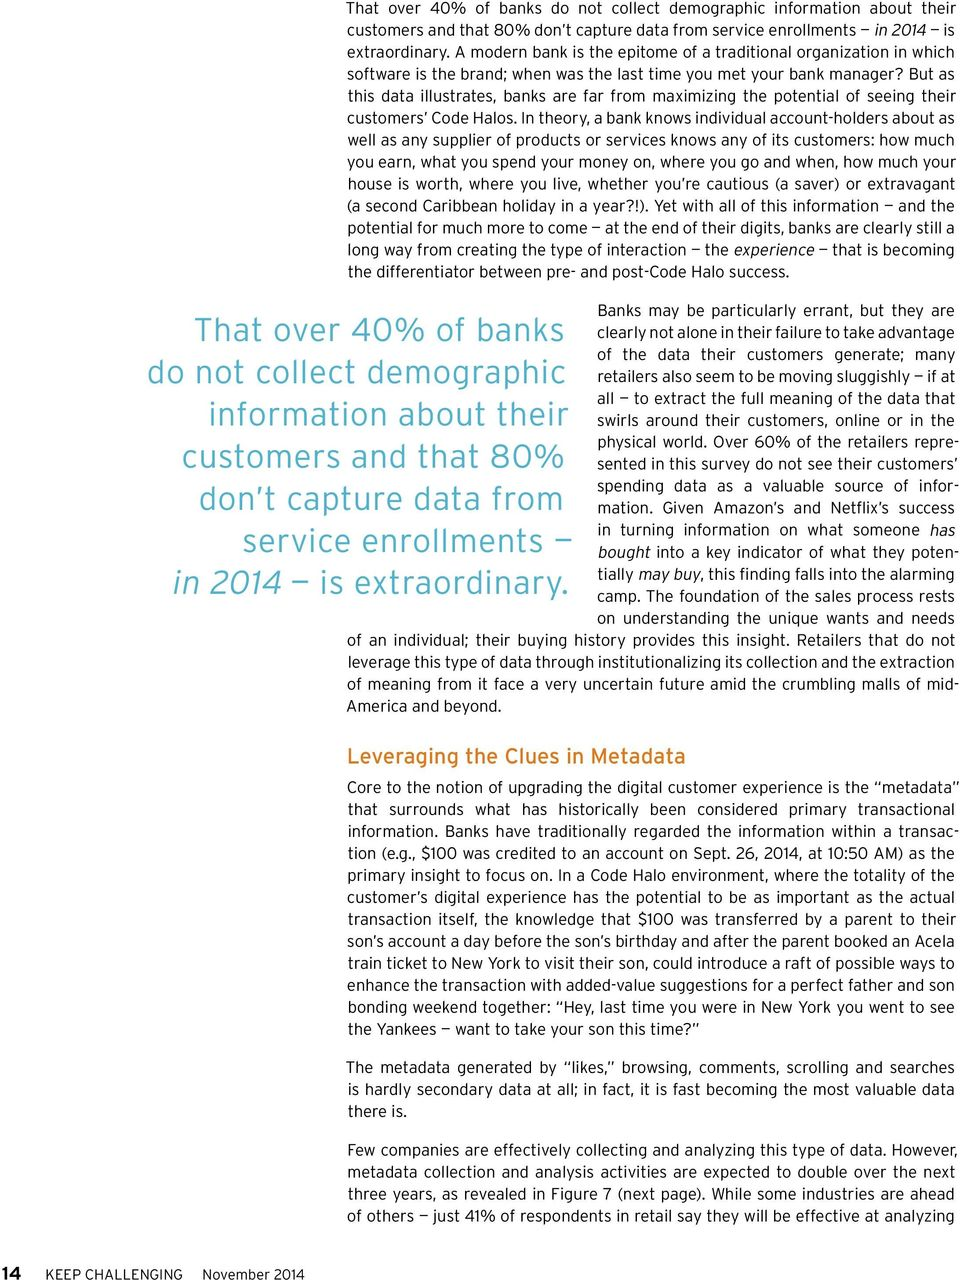 But as this data illustrates, banks are far from maximizing the potential of seeing their customers Code Halos.